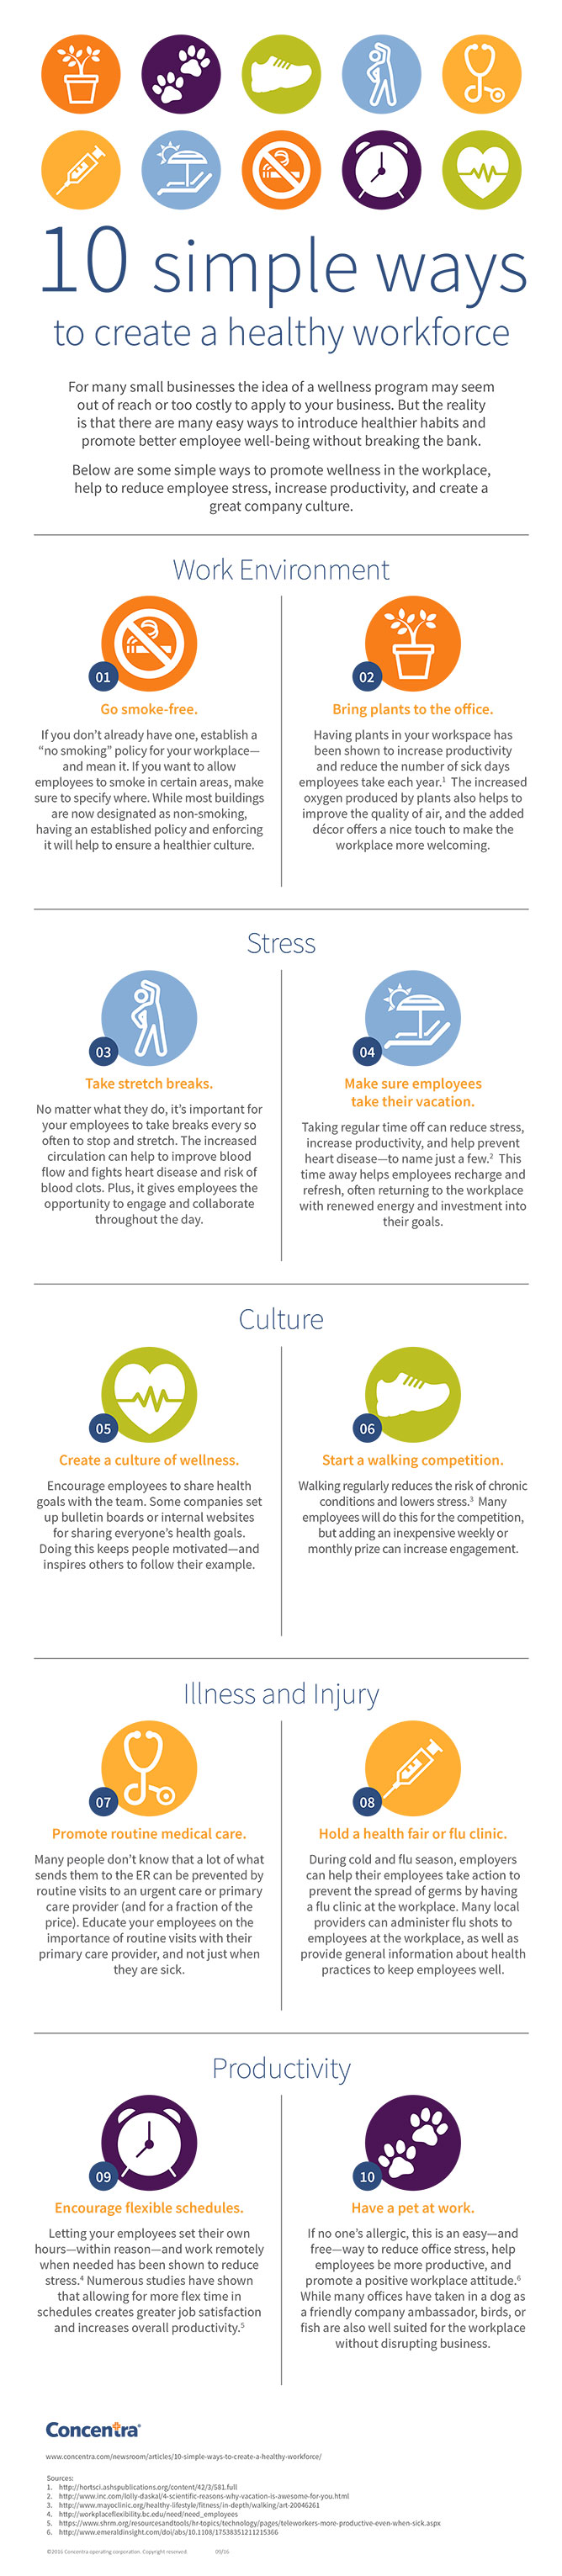 Concentra-Top-10-Simple-Ways-to-Create-a-Healthy-Workforce-Infographic